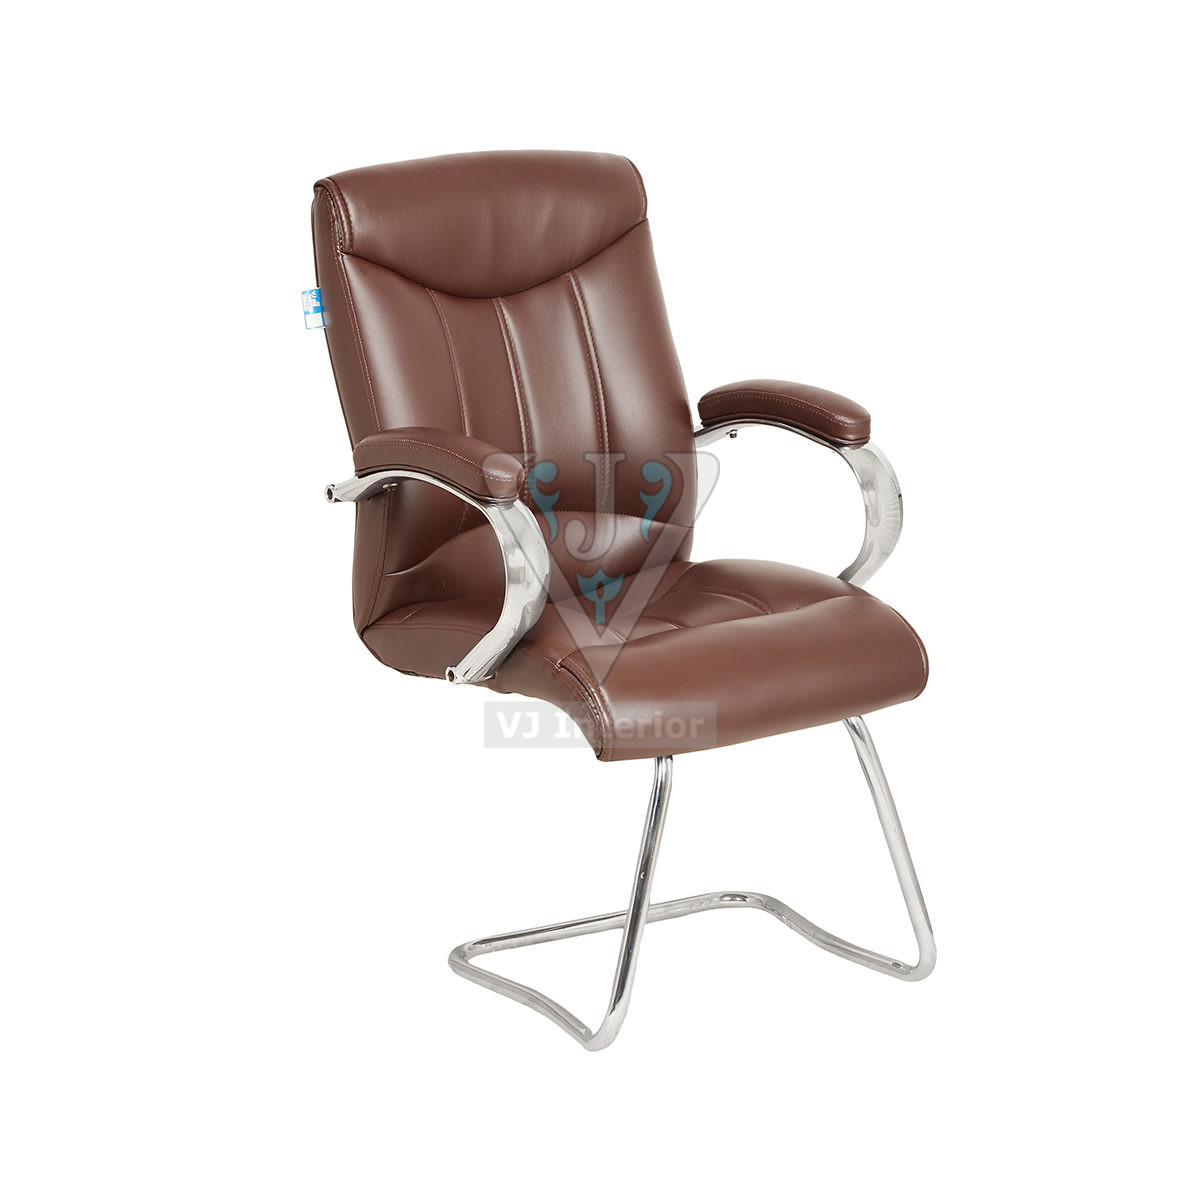 Brown bonded leather Padded Office Visitor Chair